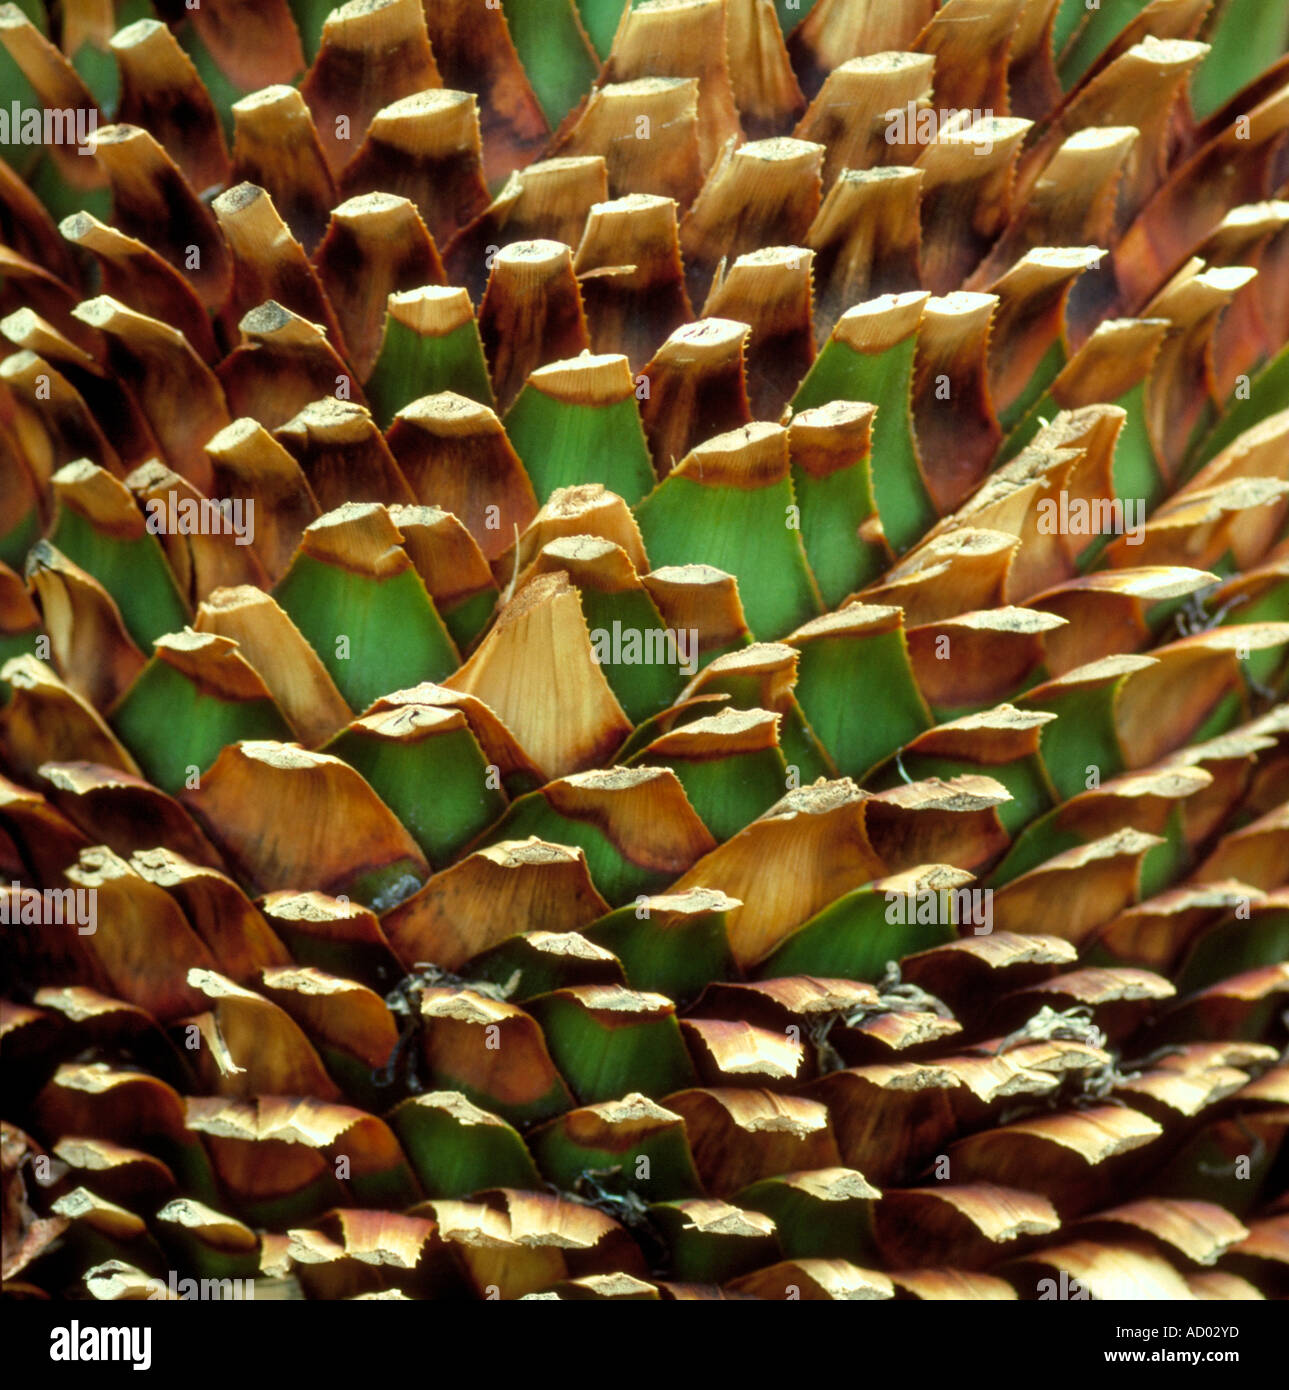 Detail of a Palm Tree with Trimmed Leaves - Stock Image